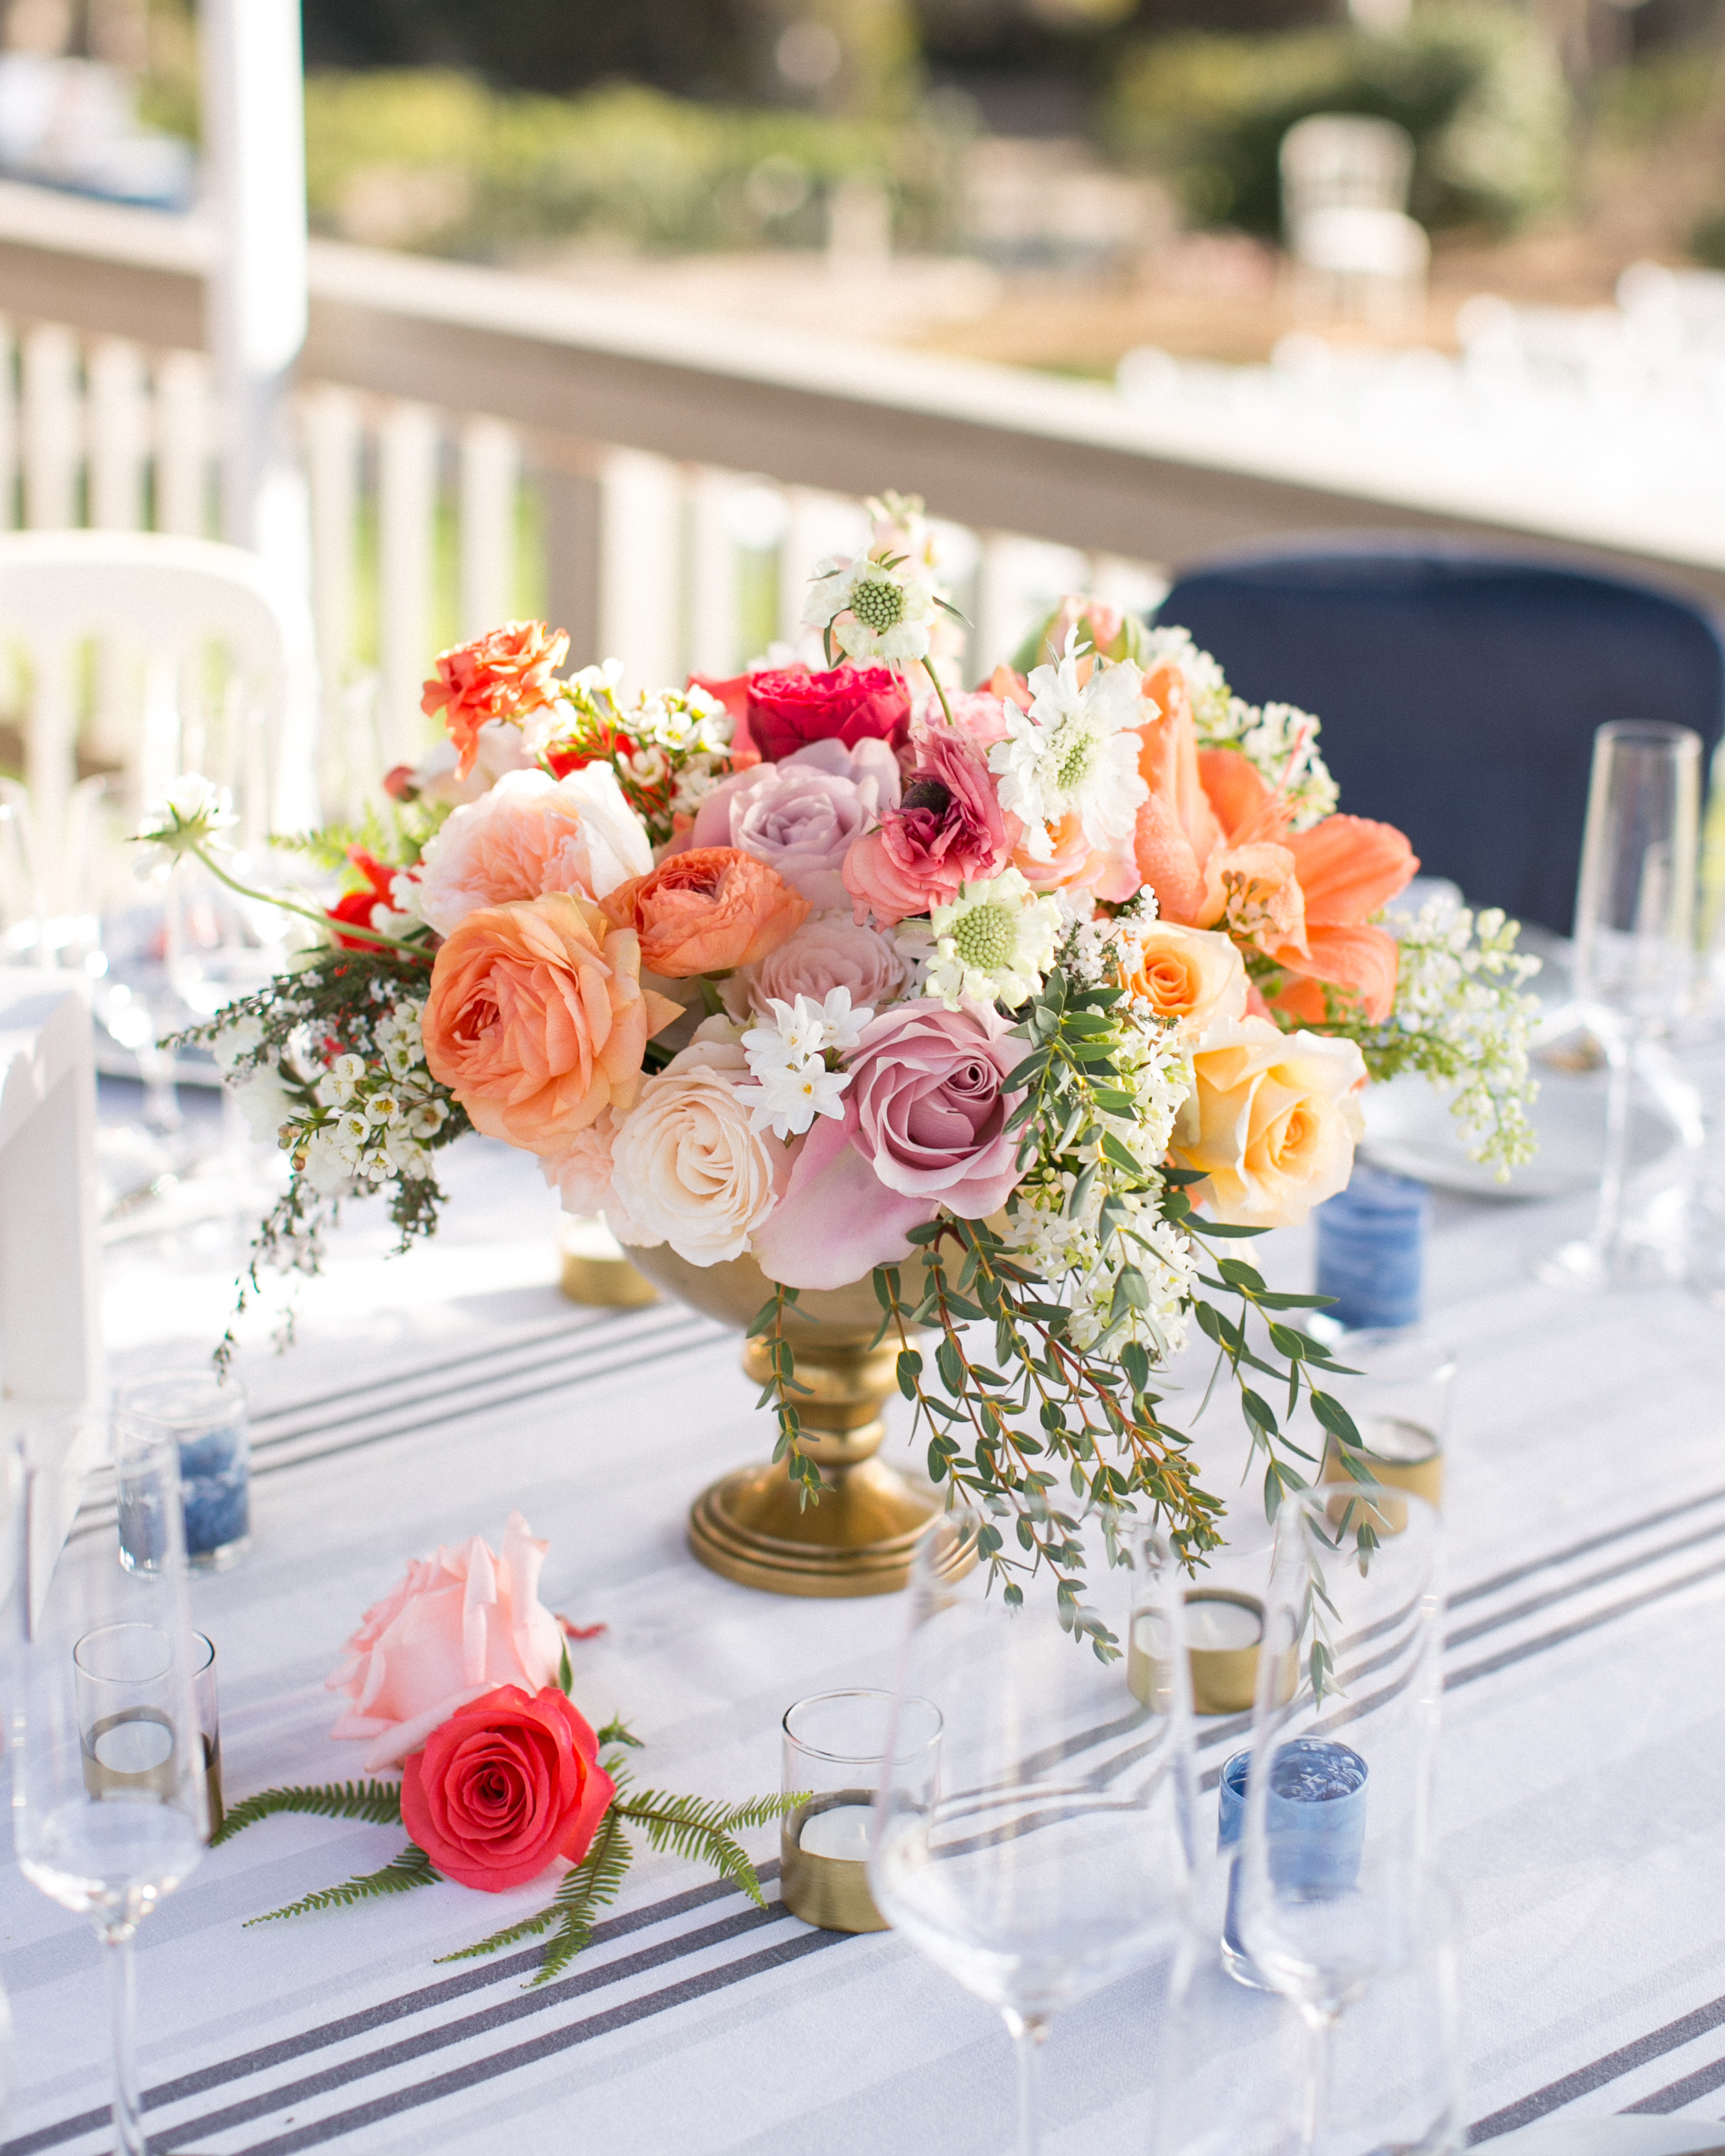 Ideas For Wedding Flowers: 50 Wedding Centerpiece Ideas We Love